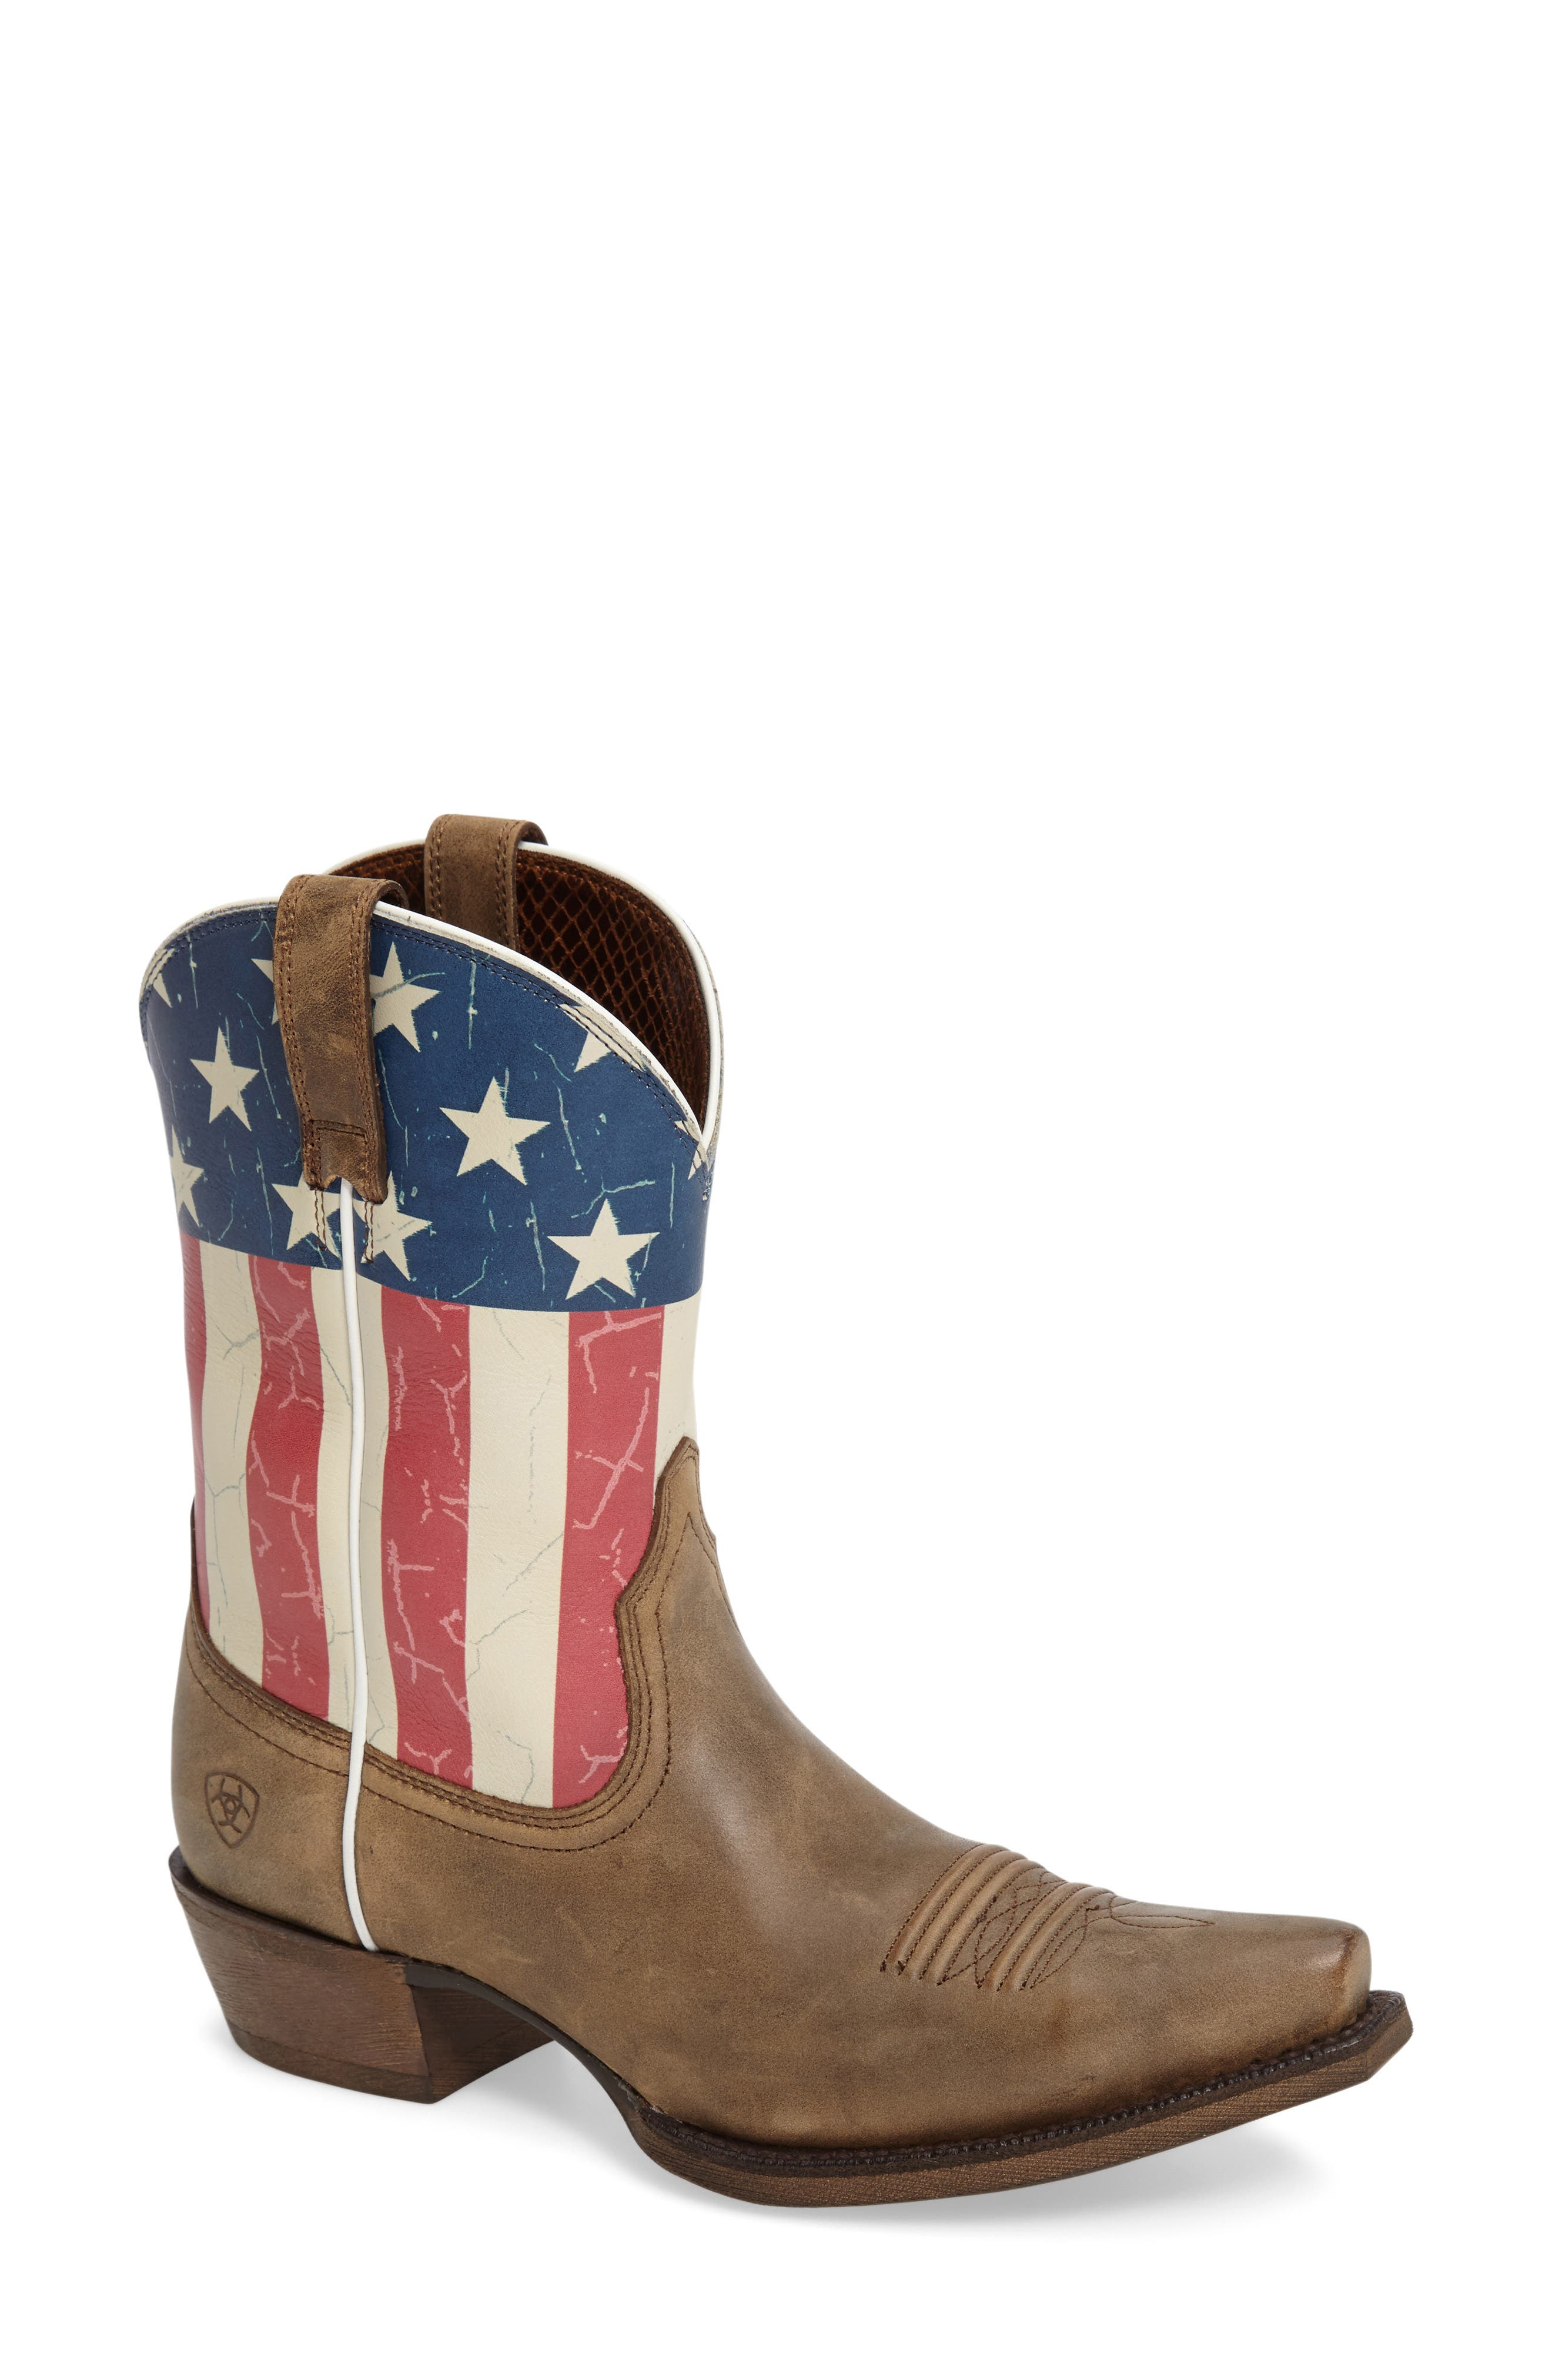 Main Image - Ariat Old Glory Western Boot (Women)